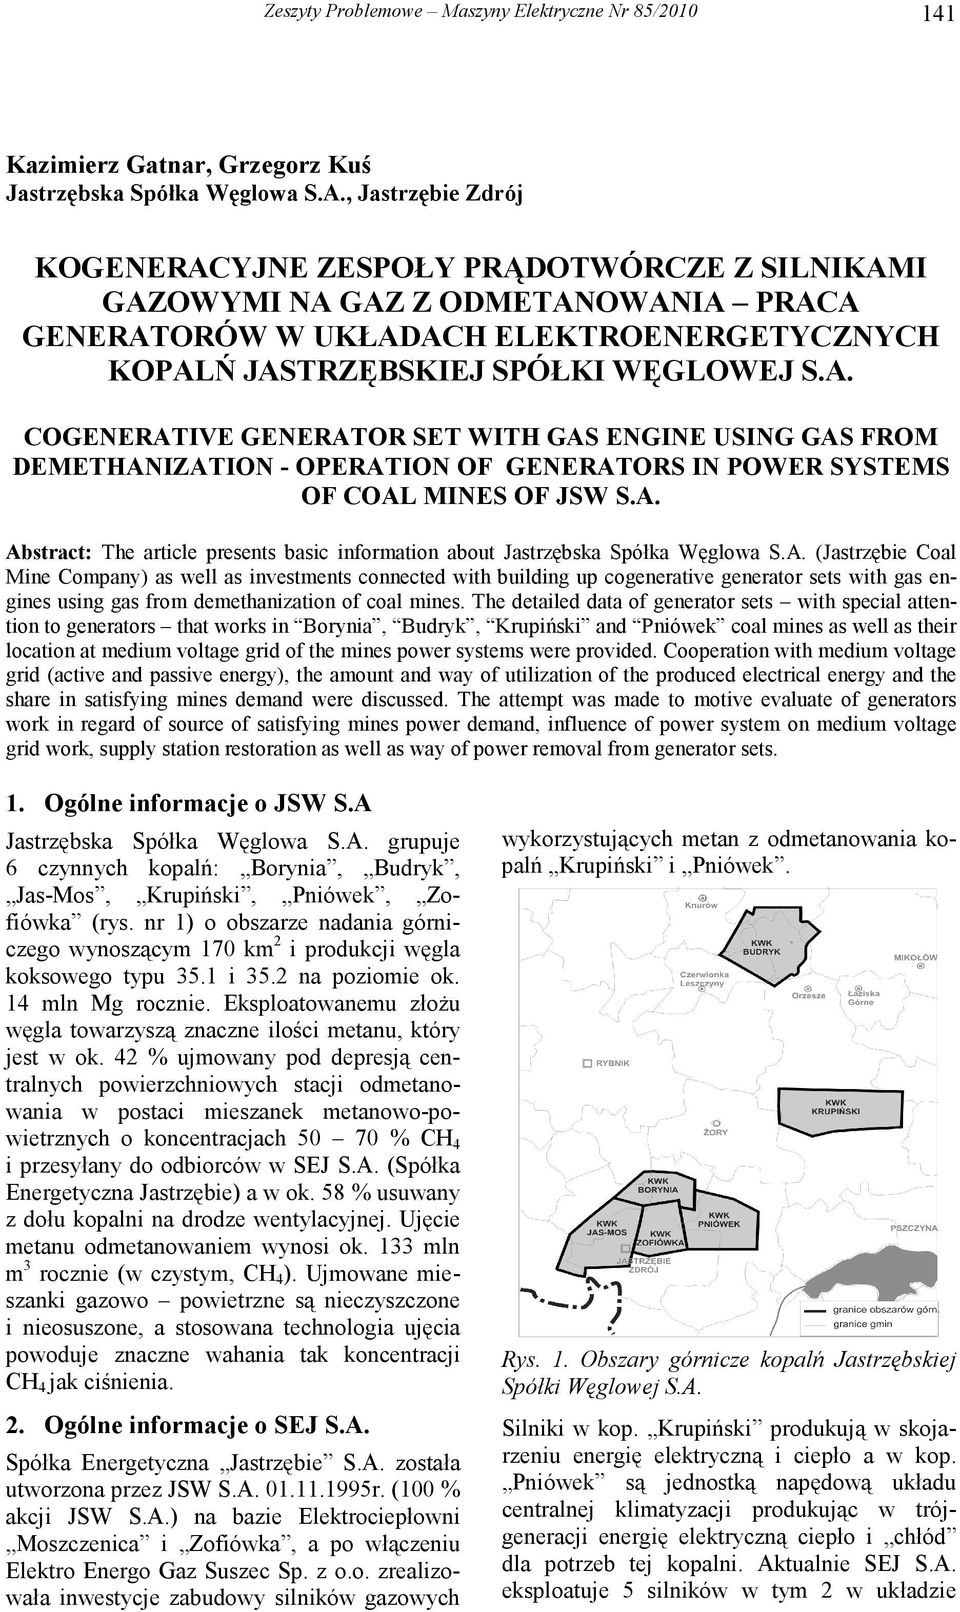 A. Abstract: The article presents basic information about Jastrzębska Spółka Węglowa S.A. (Jastrzębie Coal Mine Company) as well as investments connected with building up cogenerative generator sets with gas engines using gas from demethanization of coal mines.